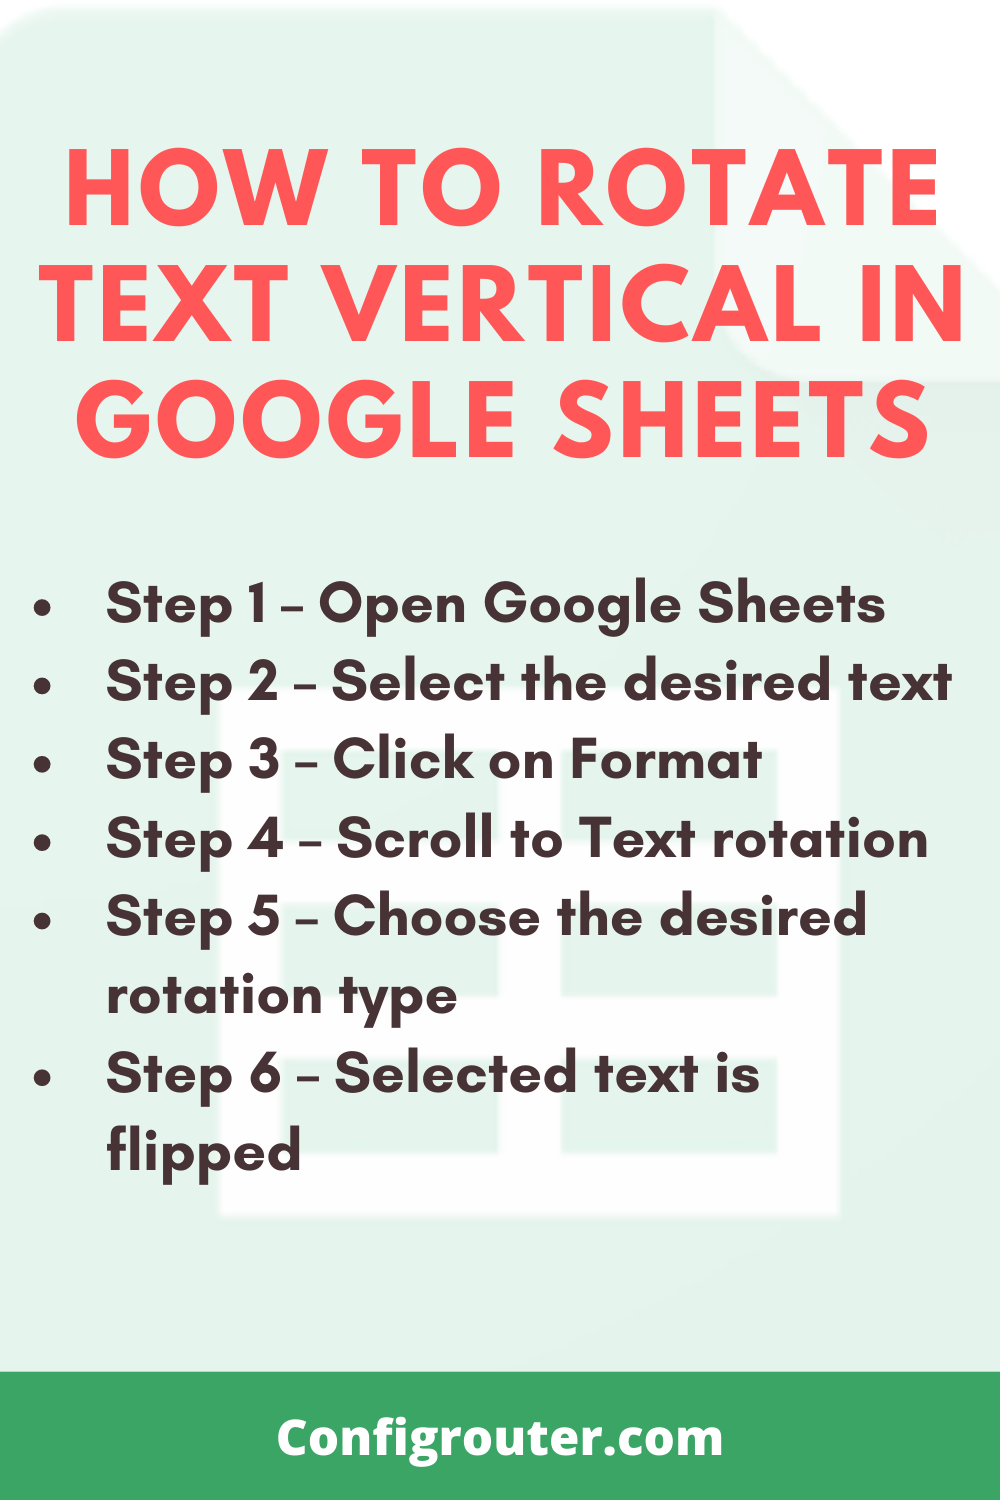 How to Rotate Text Vertical in Google Sheets doc